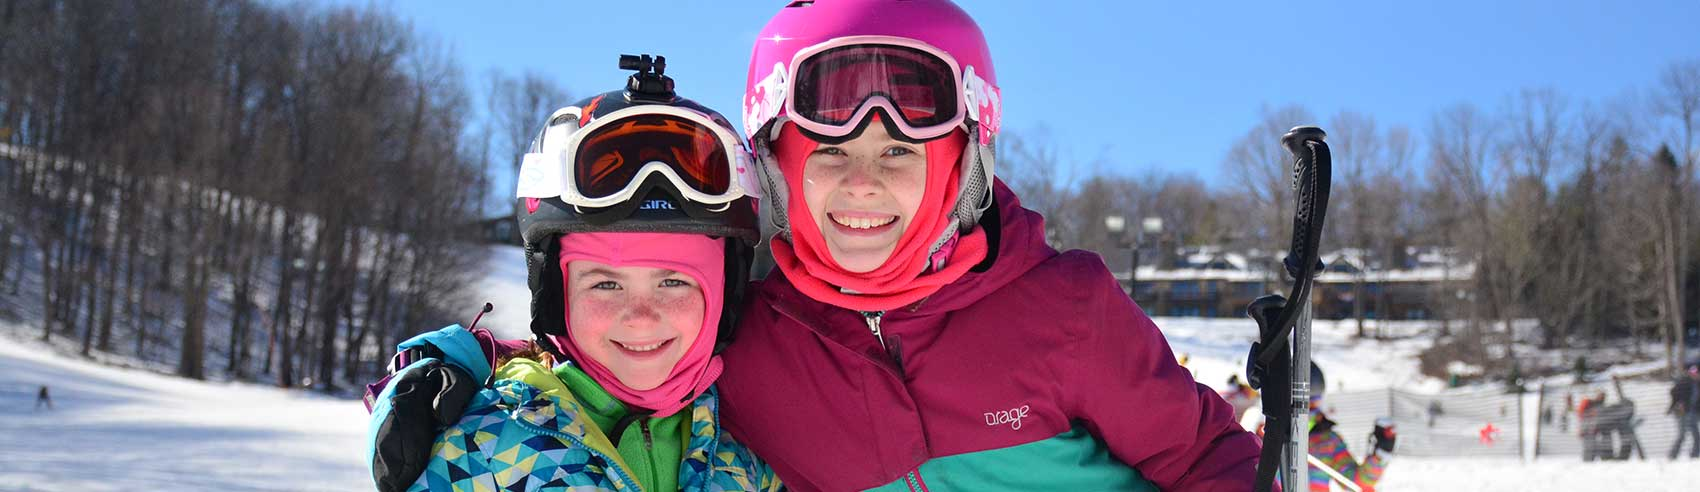 smiling-kids-ready-to-ski